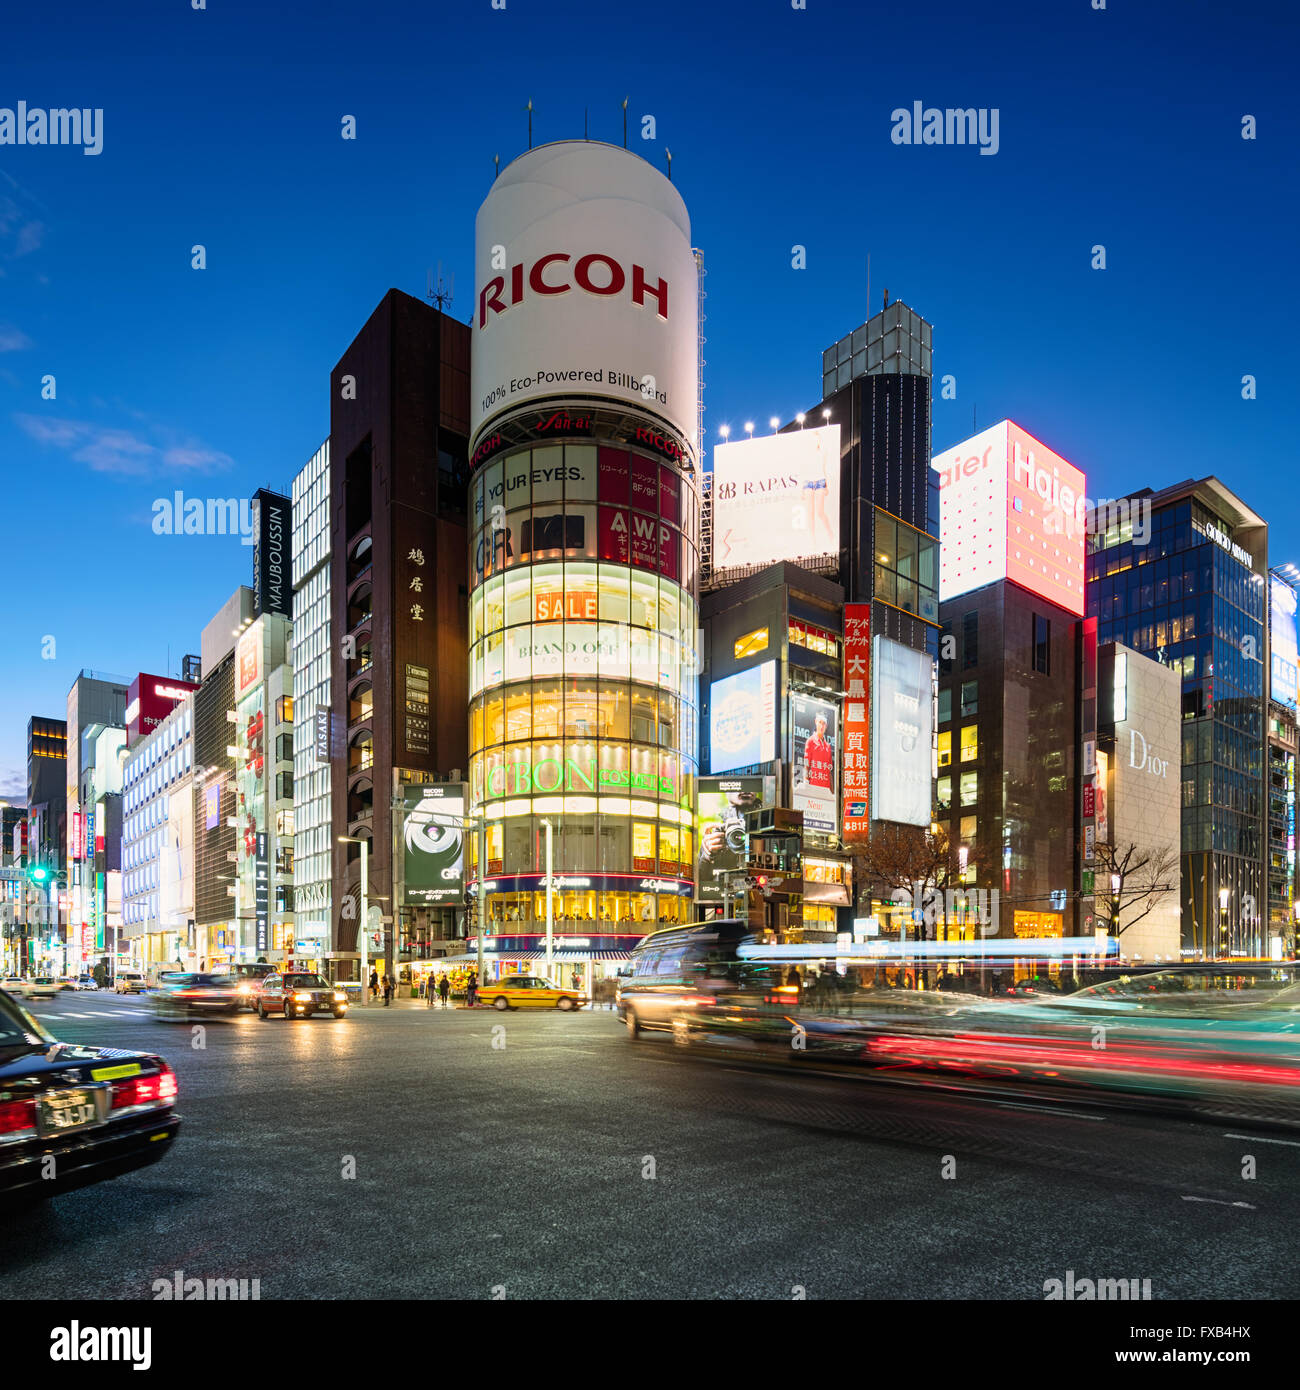 Tokyo, Japan - January 18, 2015: Ginza shopping district at rush hour in Tokyo. The iconic Sanaa Building is at Stock Photo